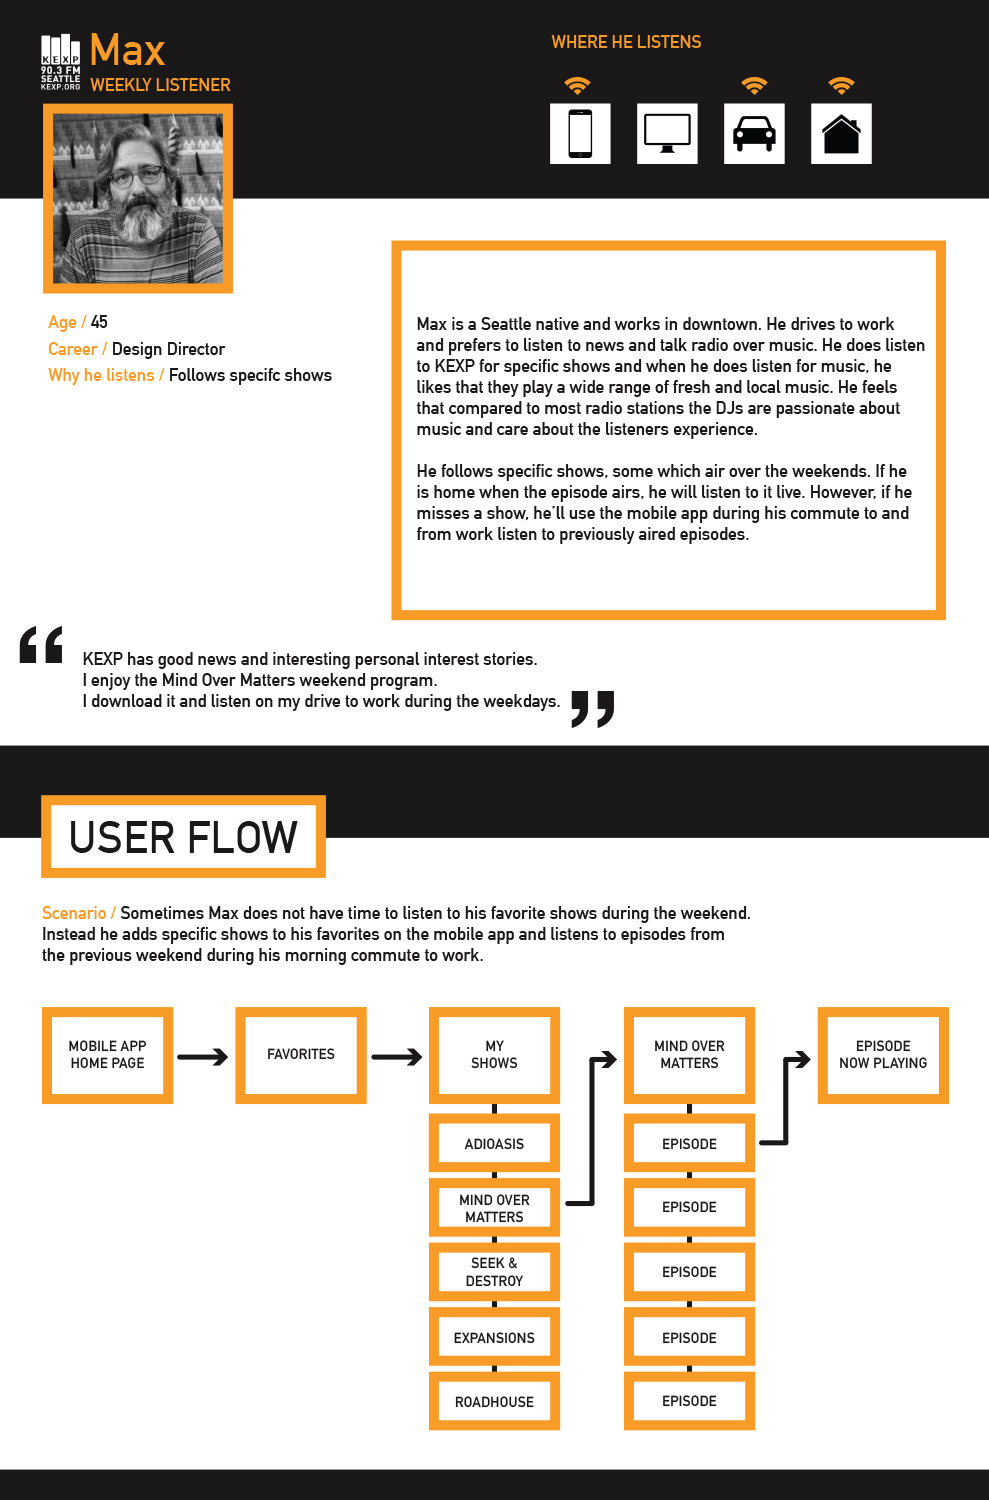 UX DESIGN - research / persona / user flow